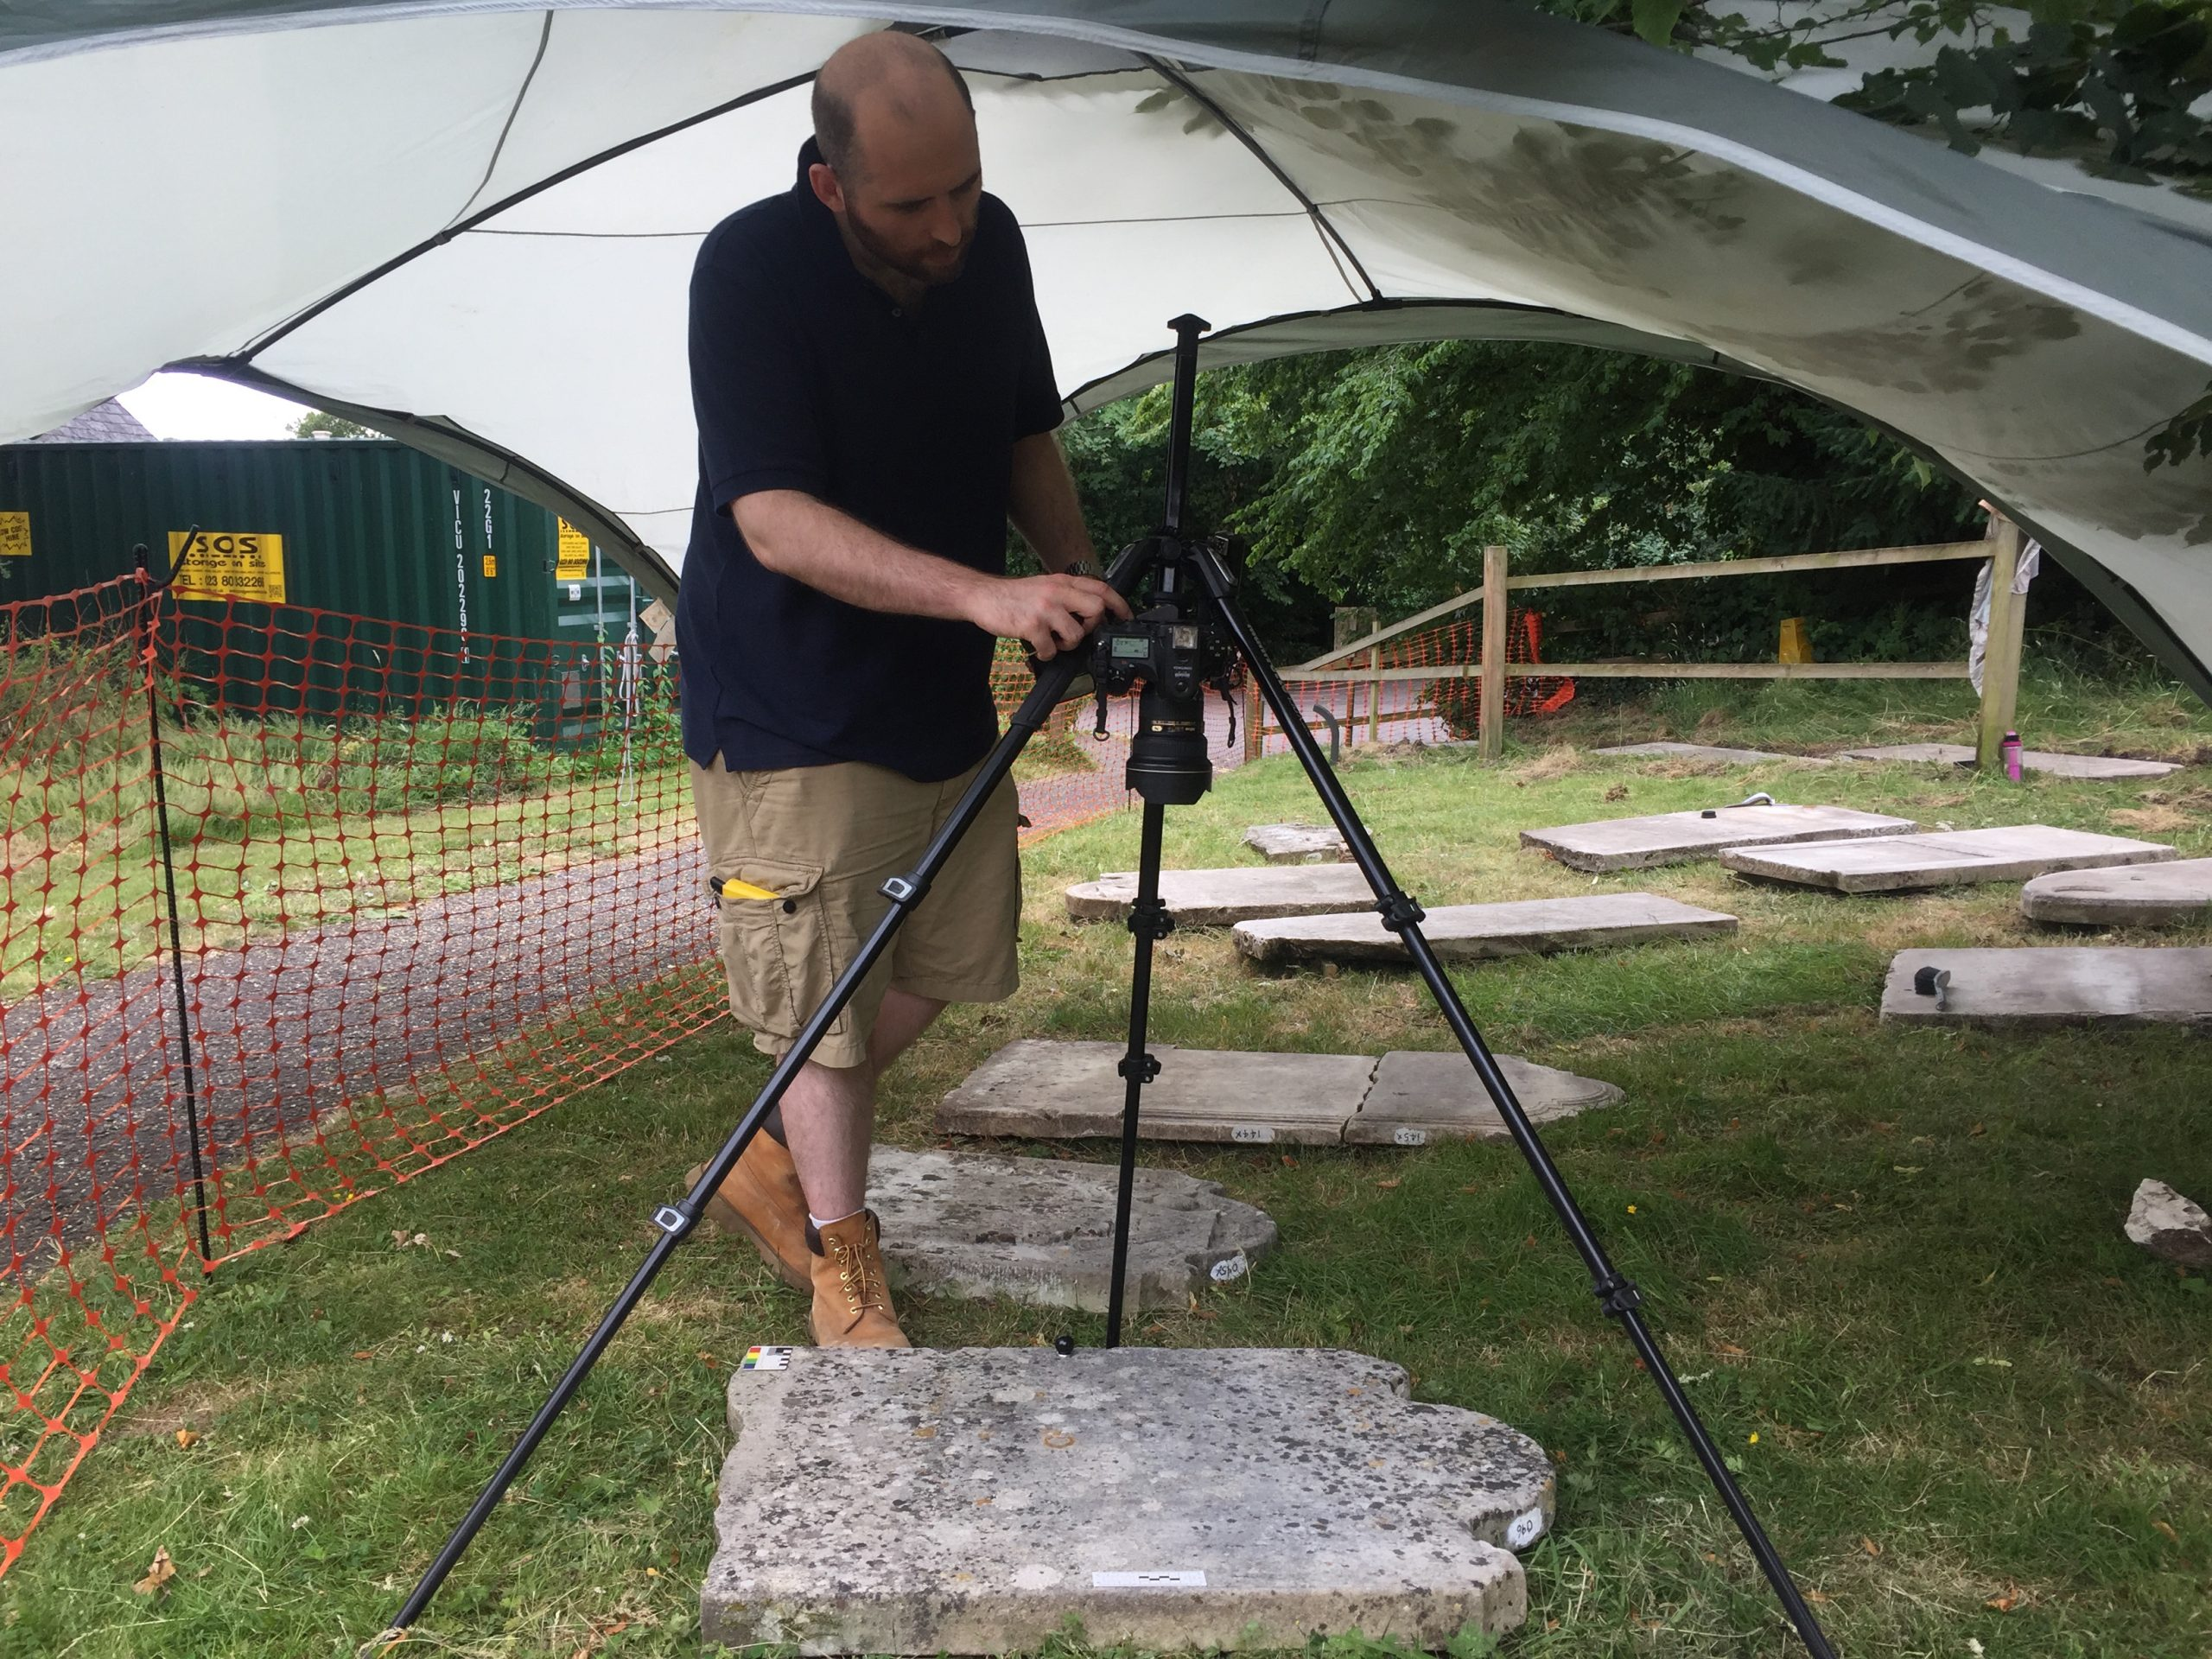 A man stands under a gazebo in the churchyard, operating camera on a tripod pointed directly down to photograph a headstone laid flat on the ground.